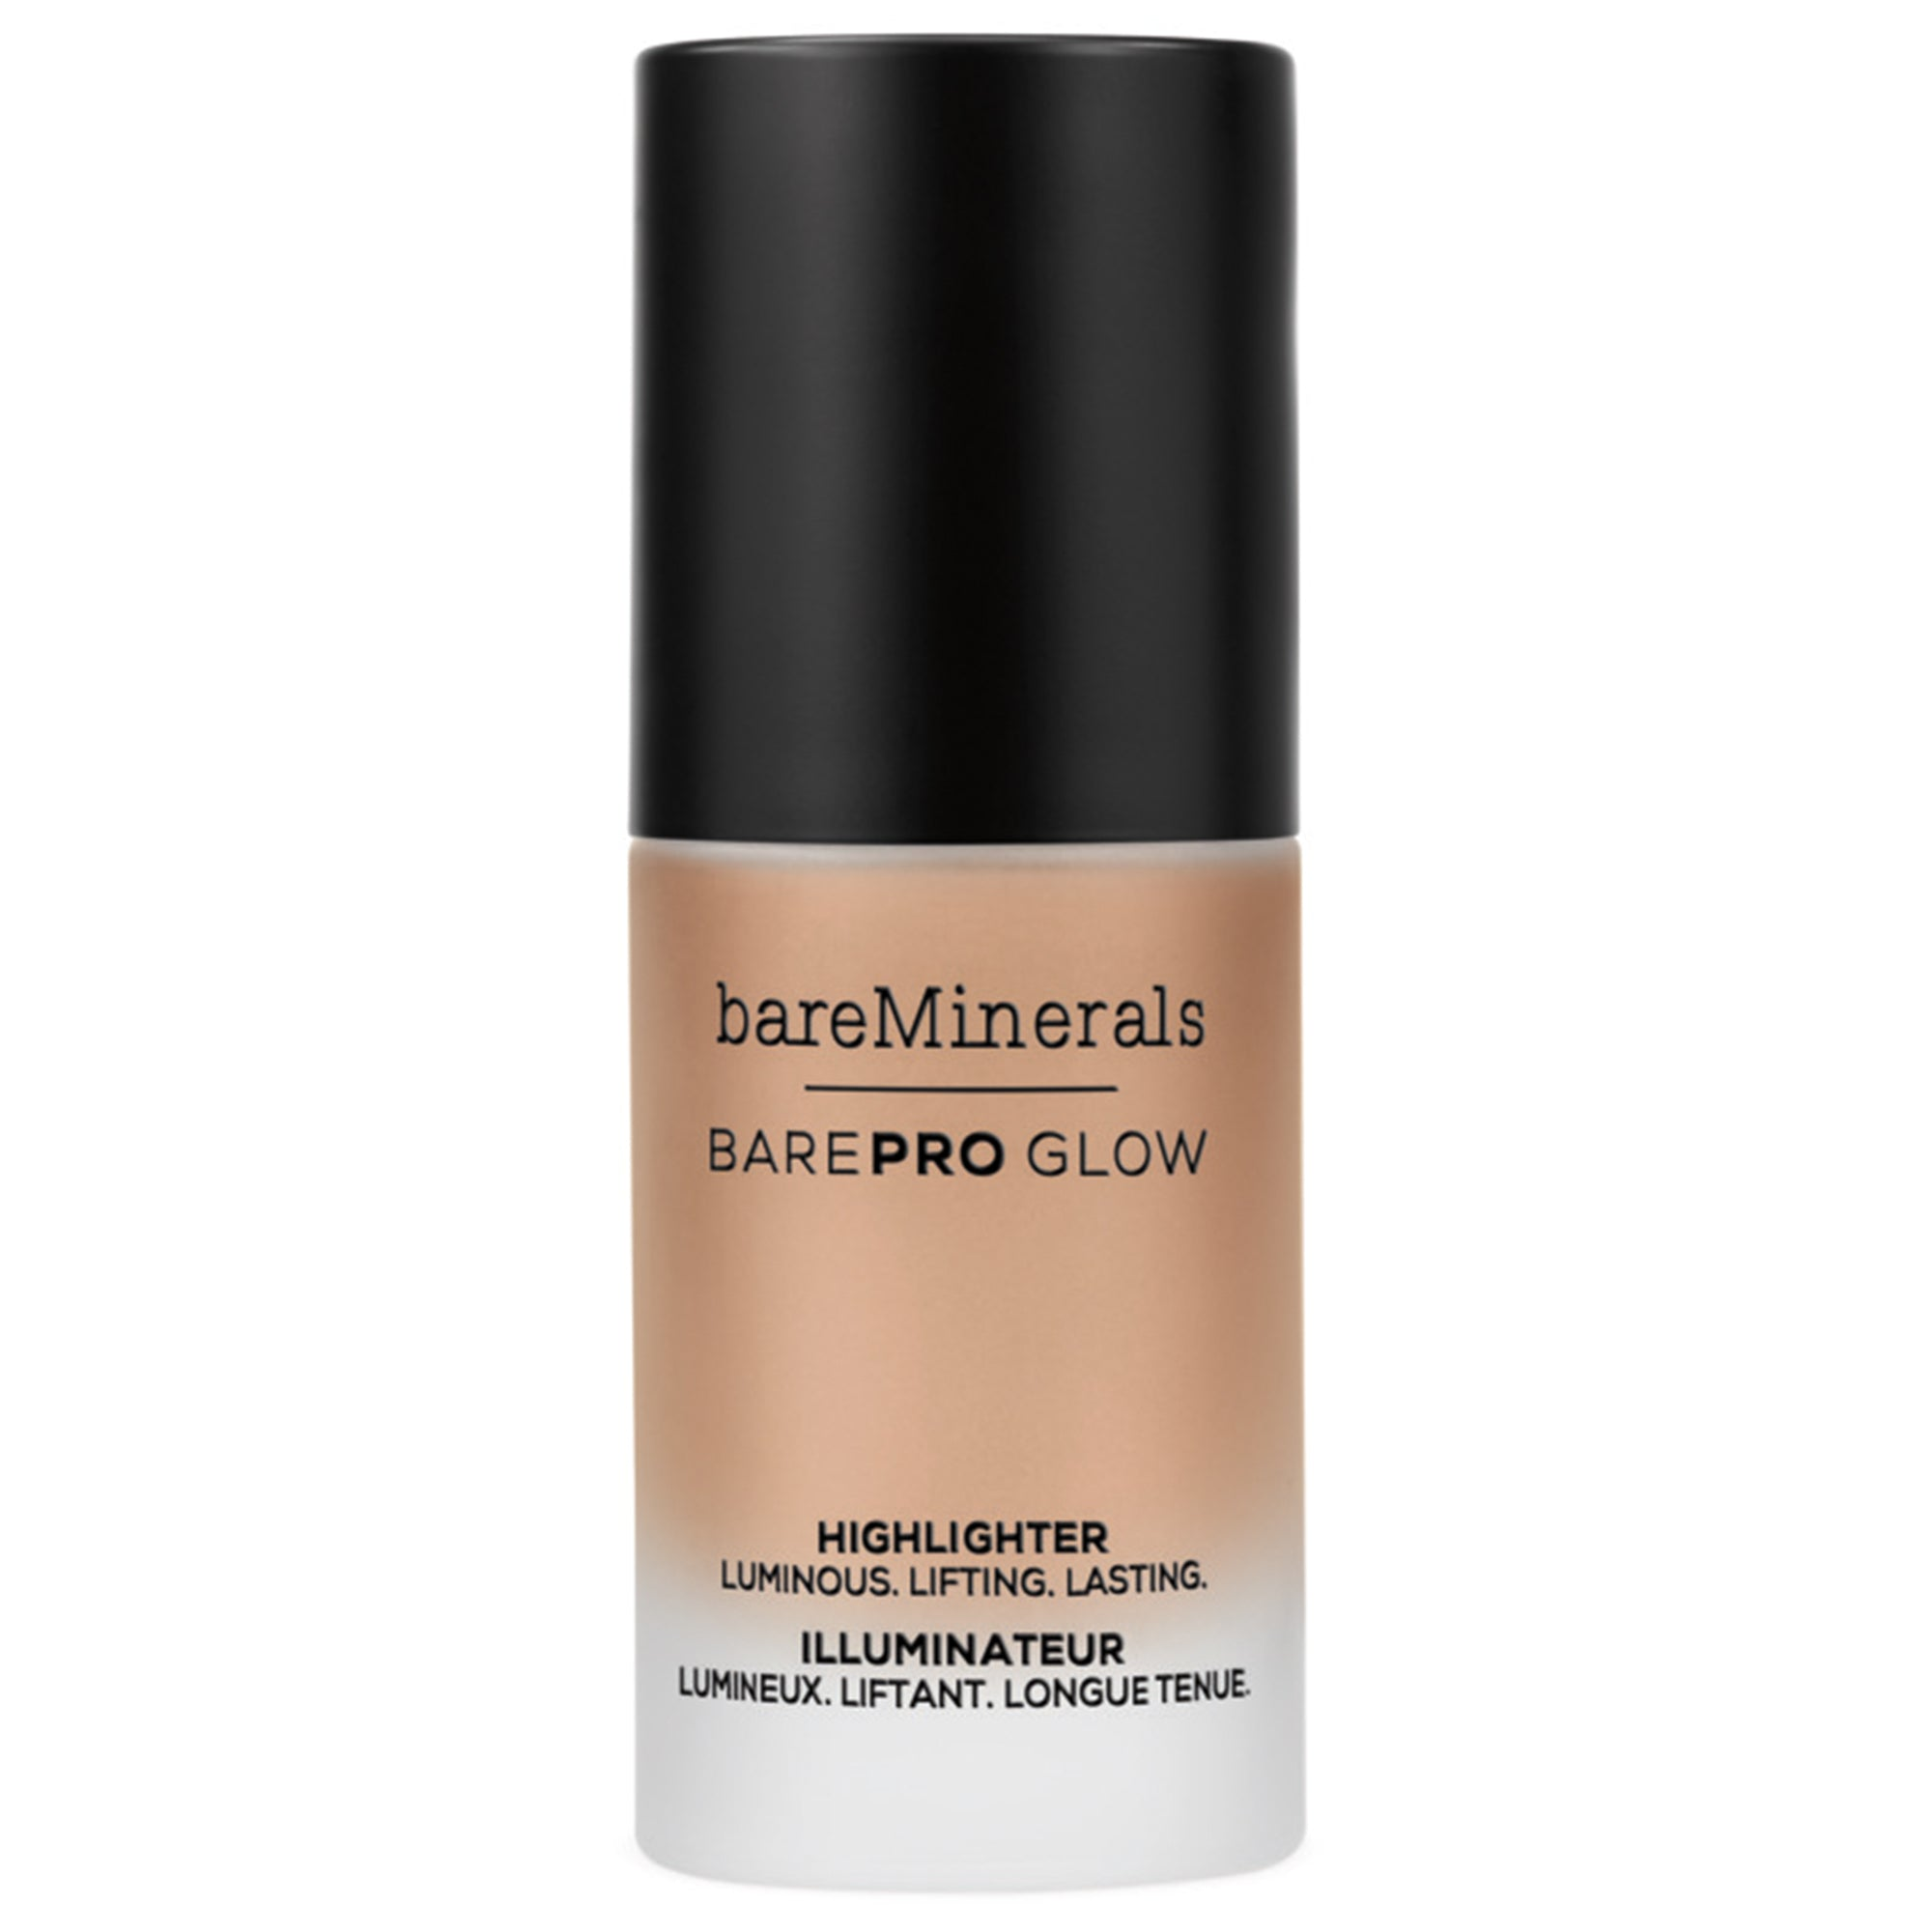 barePRO Glow Highligher Free